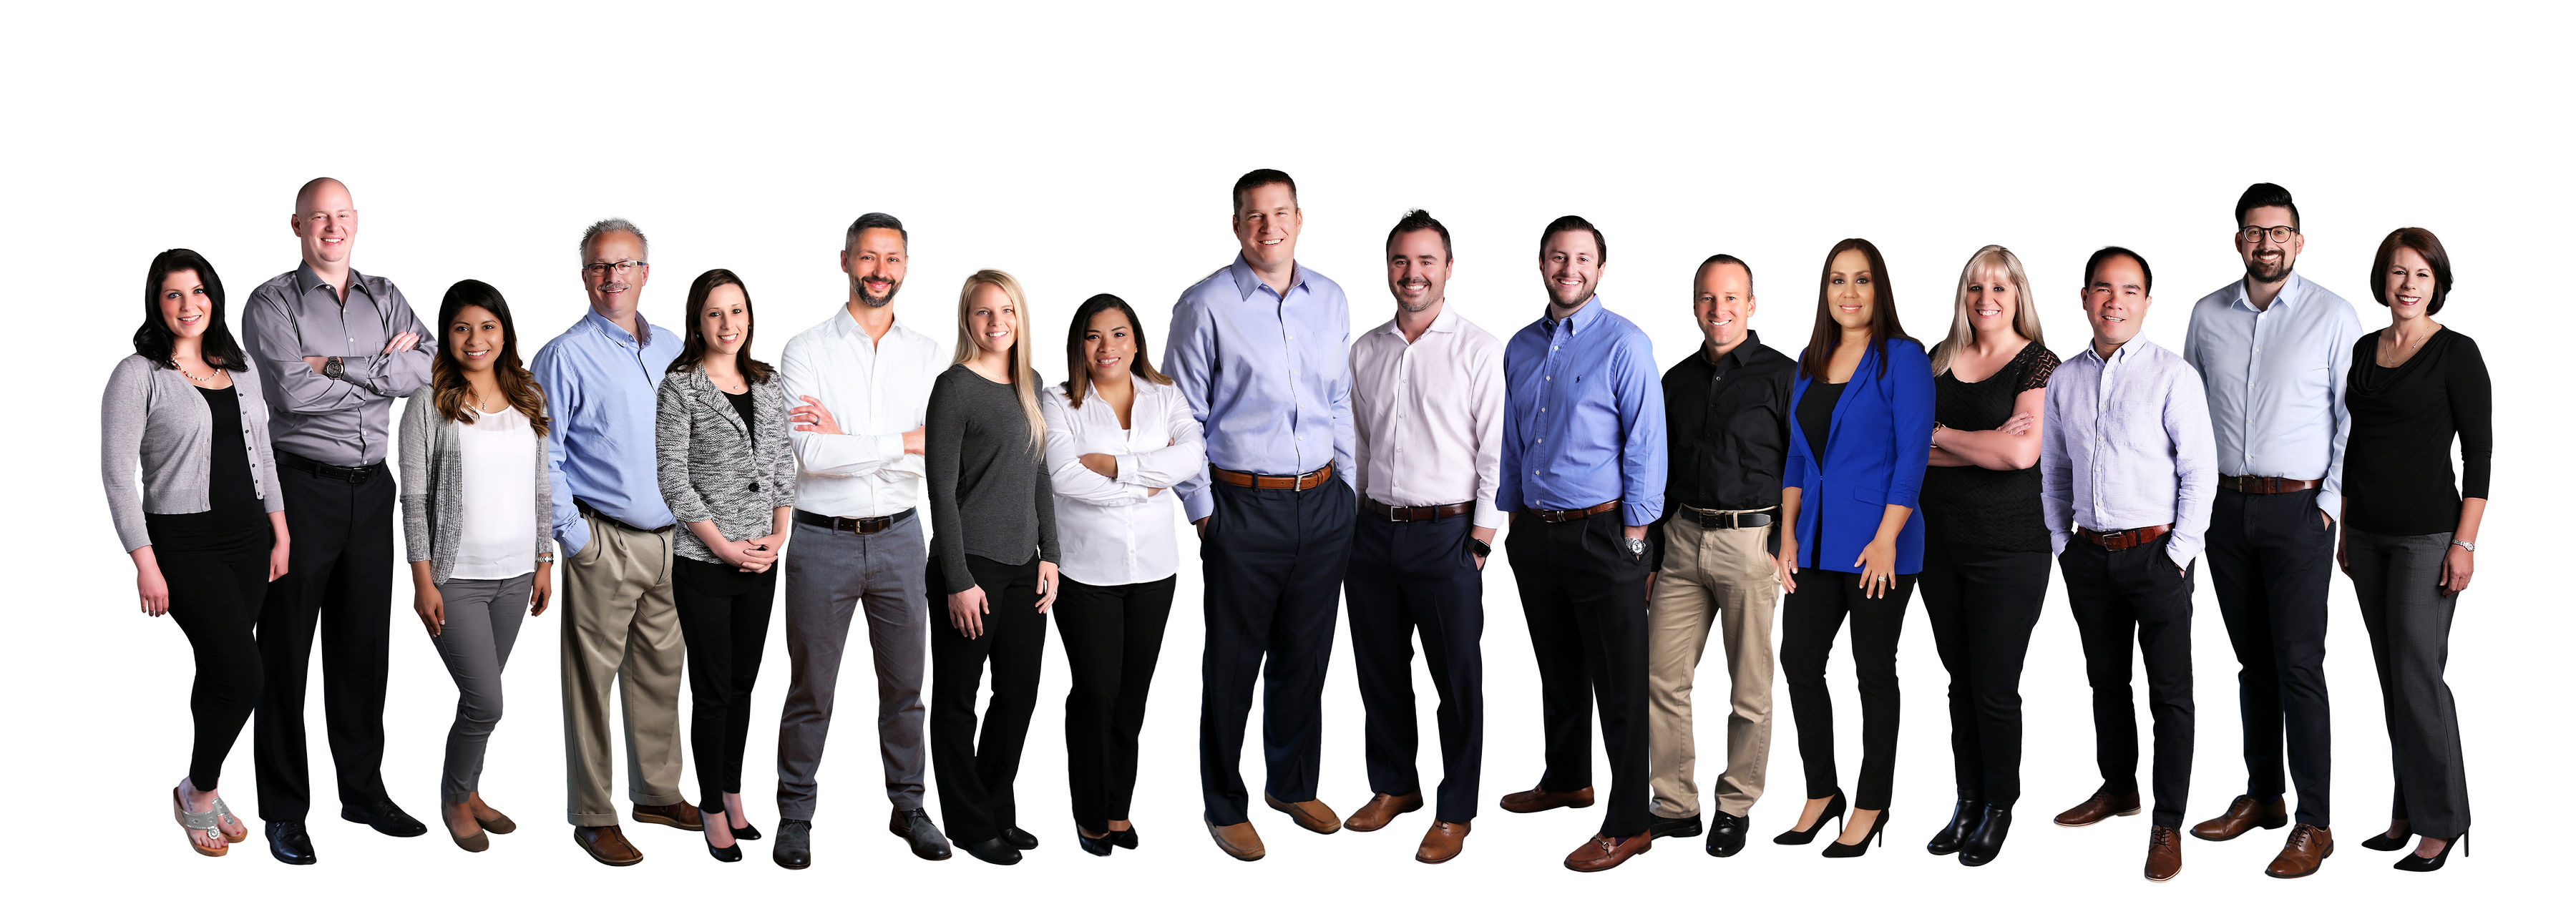 Alliance Insurance Staff Picture 2019